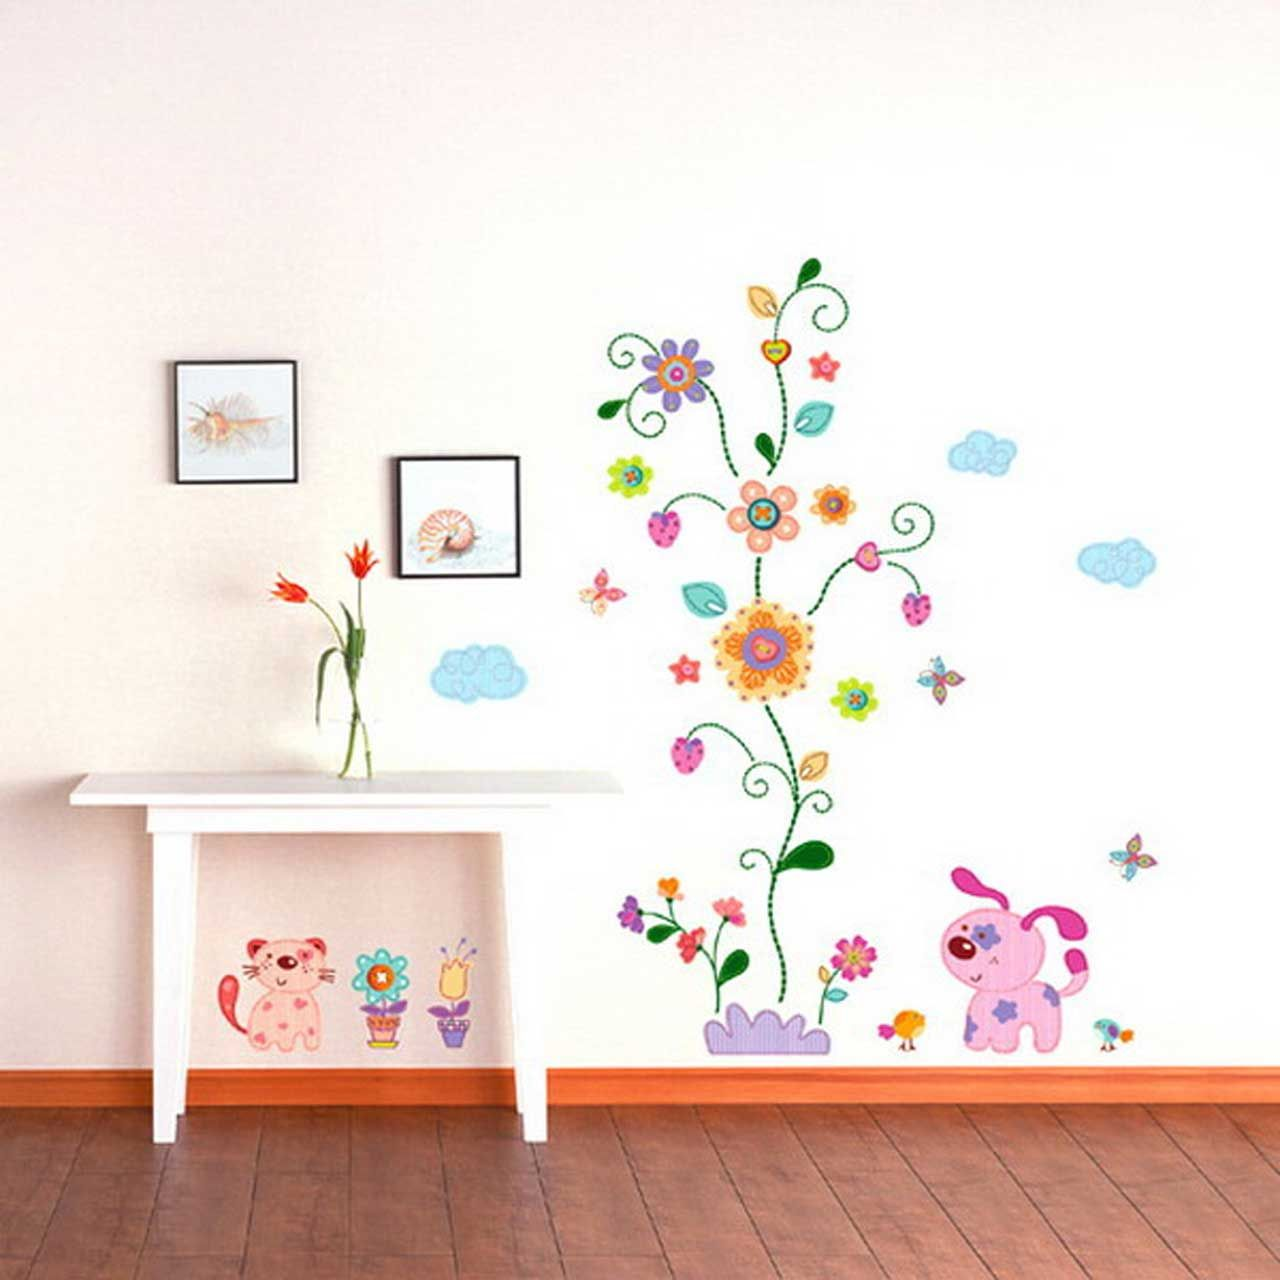 Beautiful Kids Room Decorating Design Ideas With Creative Removable Flower Wall Art Kids Room